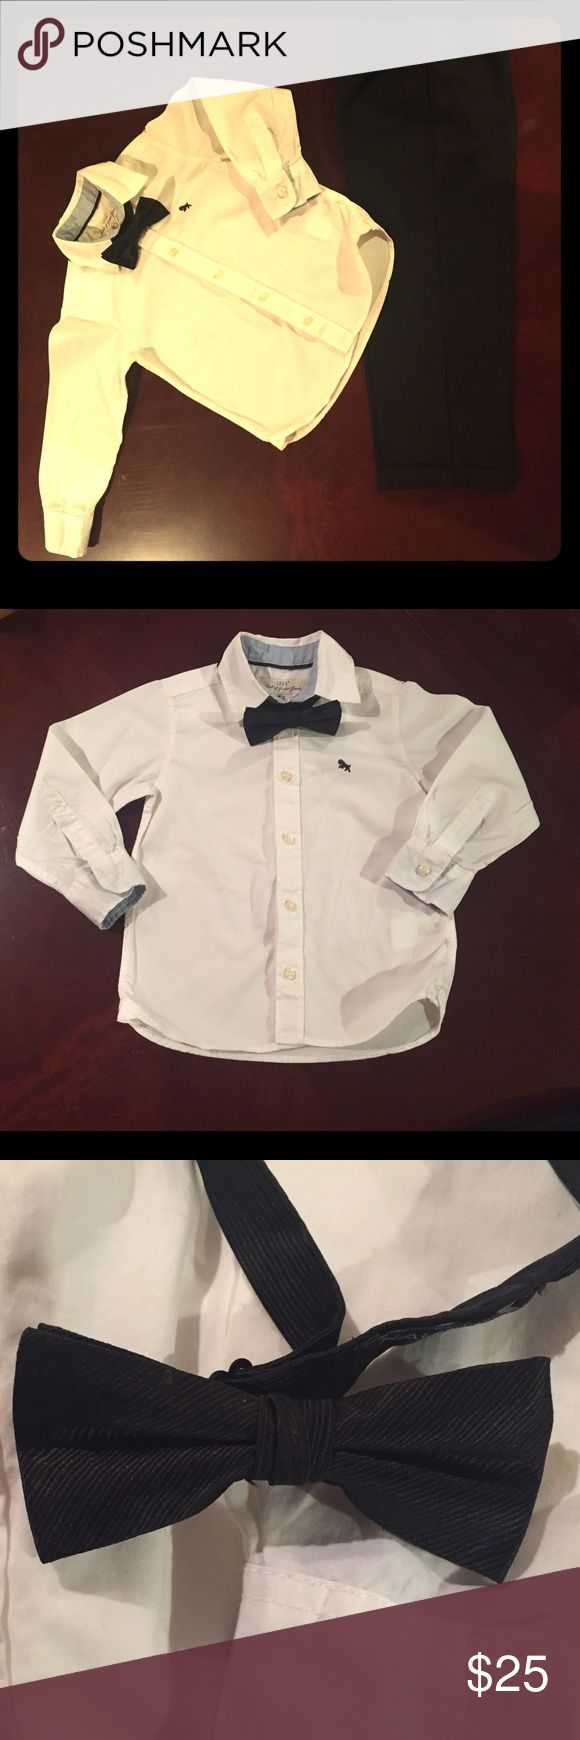 🖤 Kids Formal Set w/ Bow Tie 🖤 3T Long Sleeve White Button Down • 3T Tuxedo Pants • Black Clip-on Bow Tie • Suggestions: BUNDLE with Oxford Sperry Top Sider shoes for $50 😍 I will throw in a FREE gift (size 3T) 🛍 Matching Sets